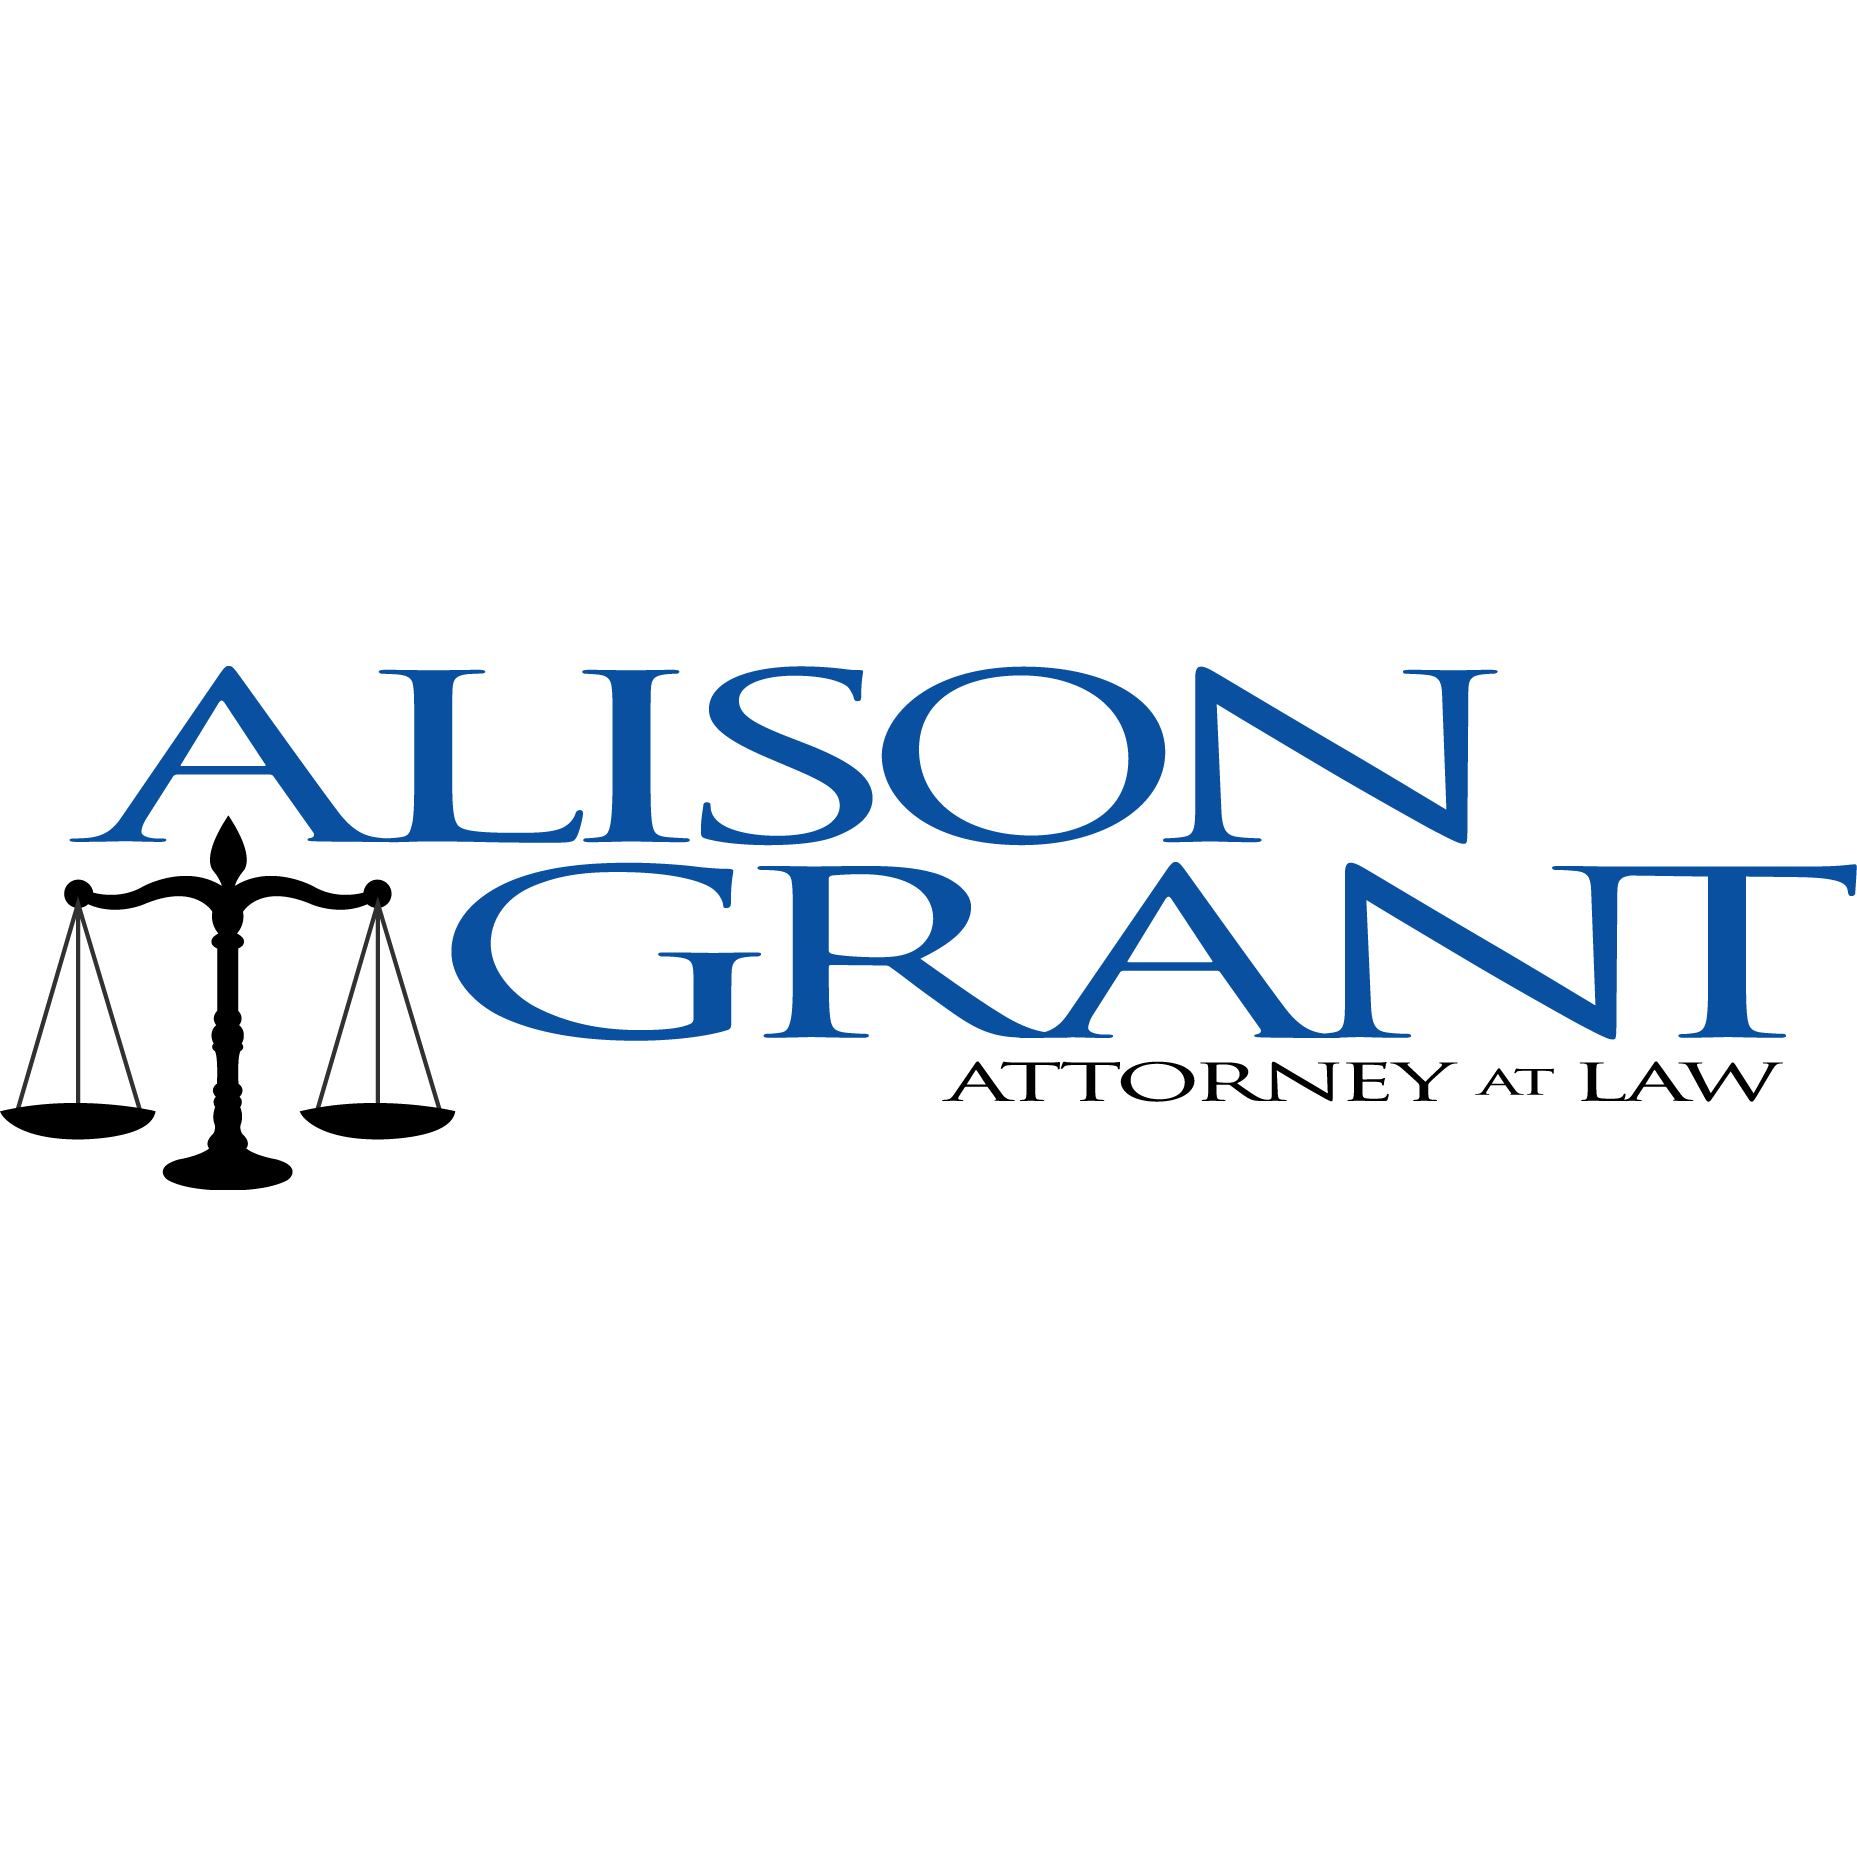 Alison Grant, Attorney at Law - ad image